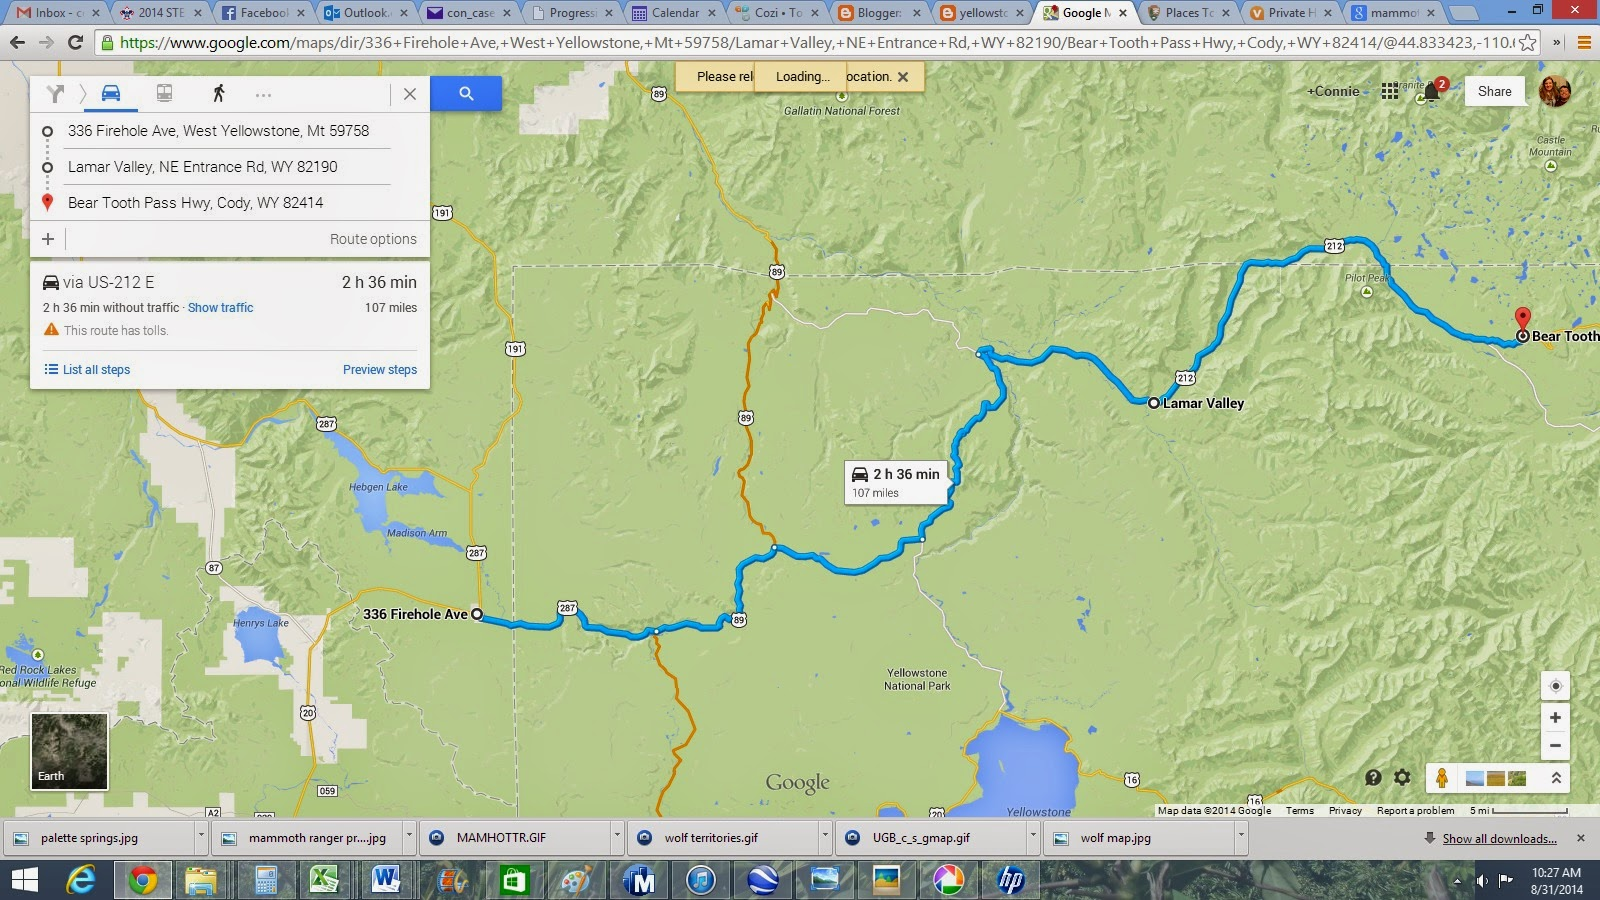 about 36 min from end of lamar to start of bear tooth